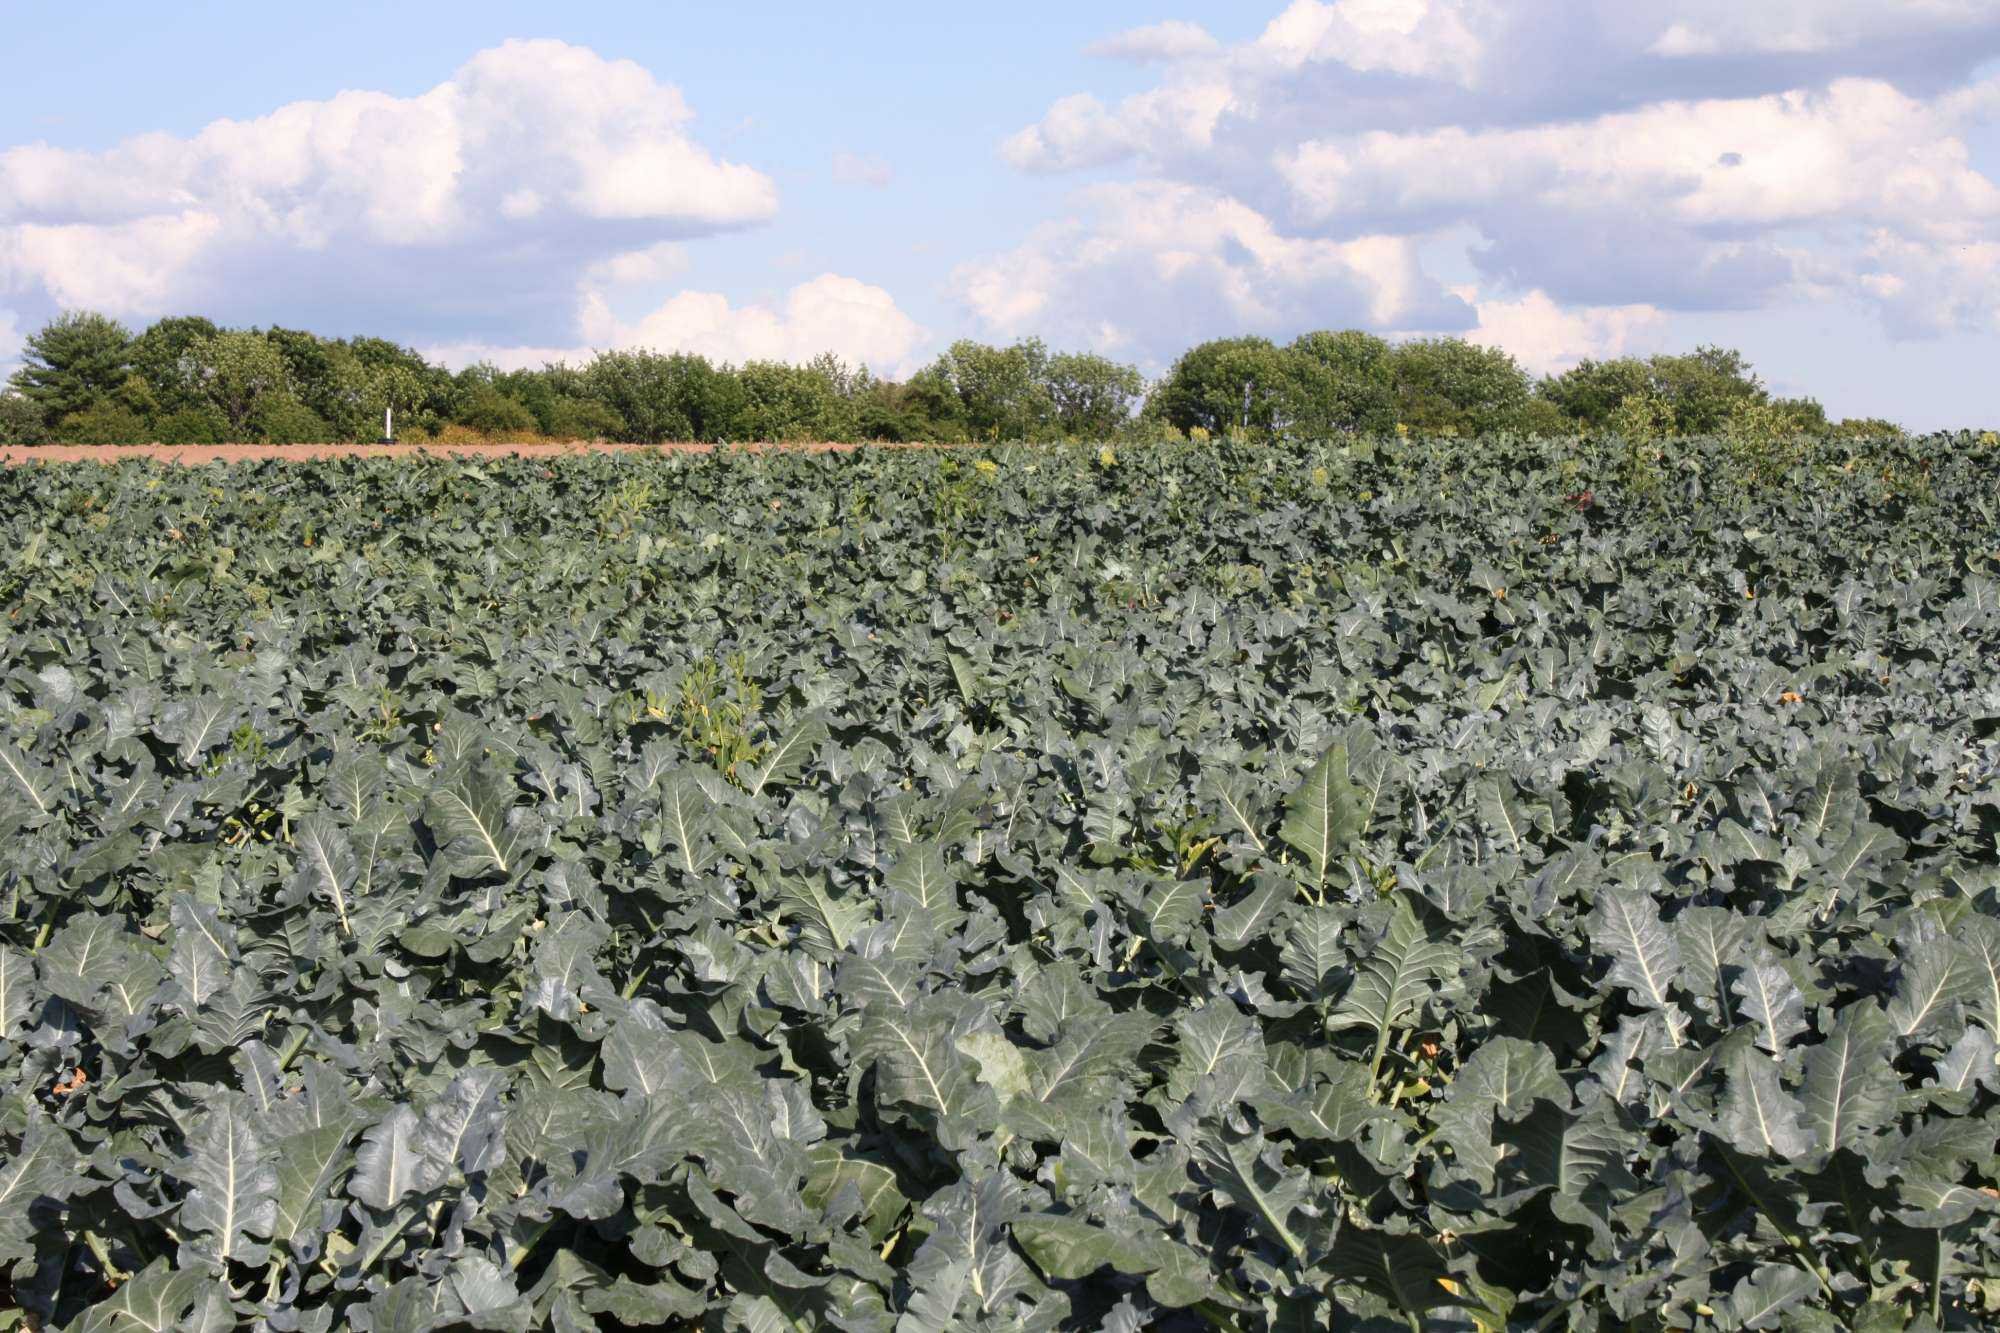 Broccoli field